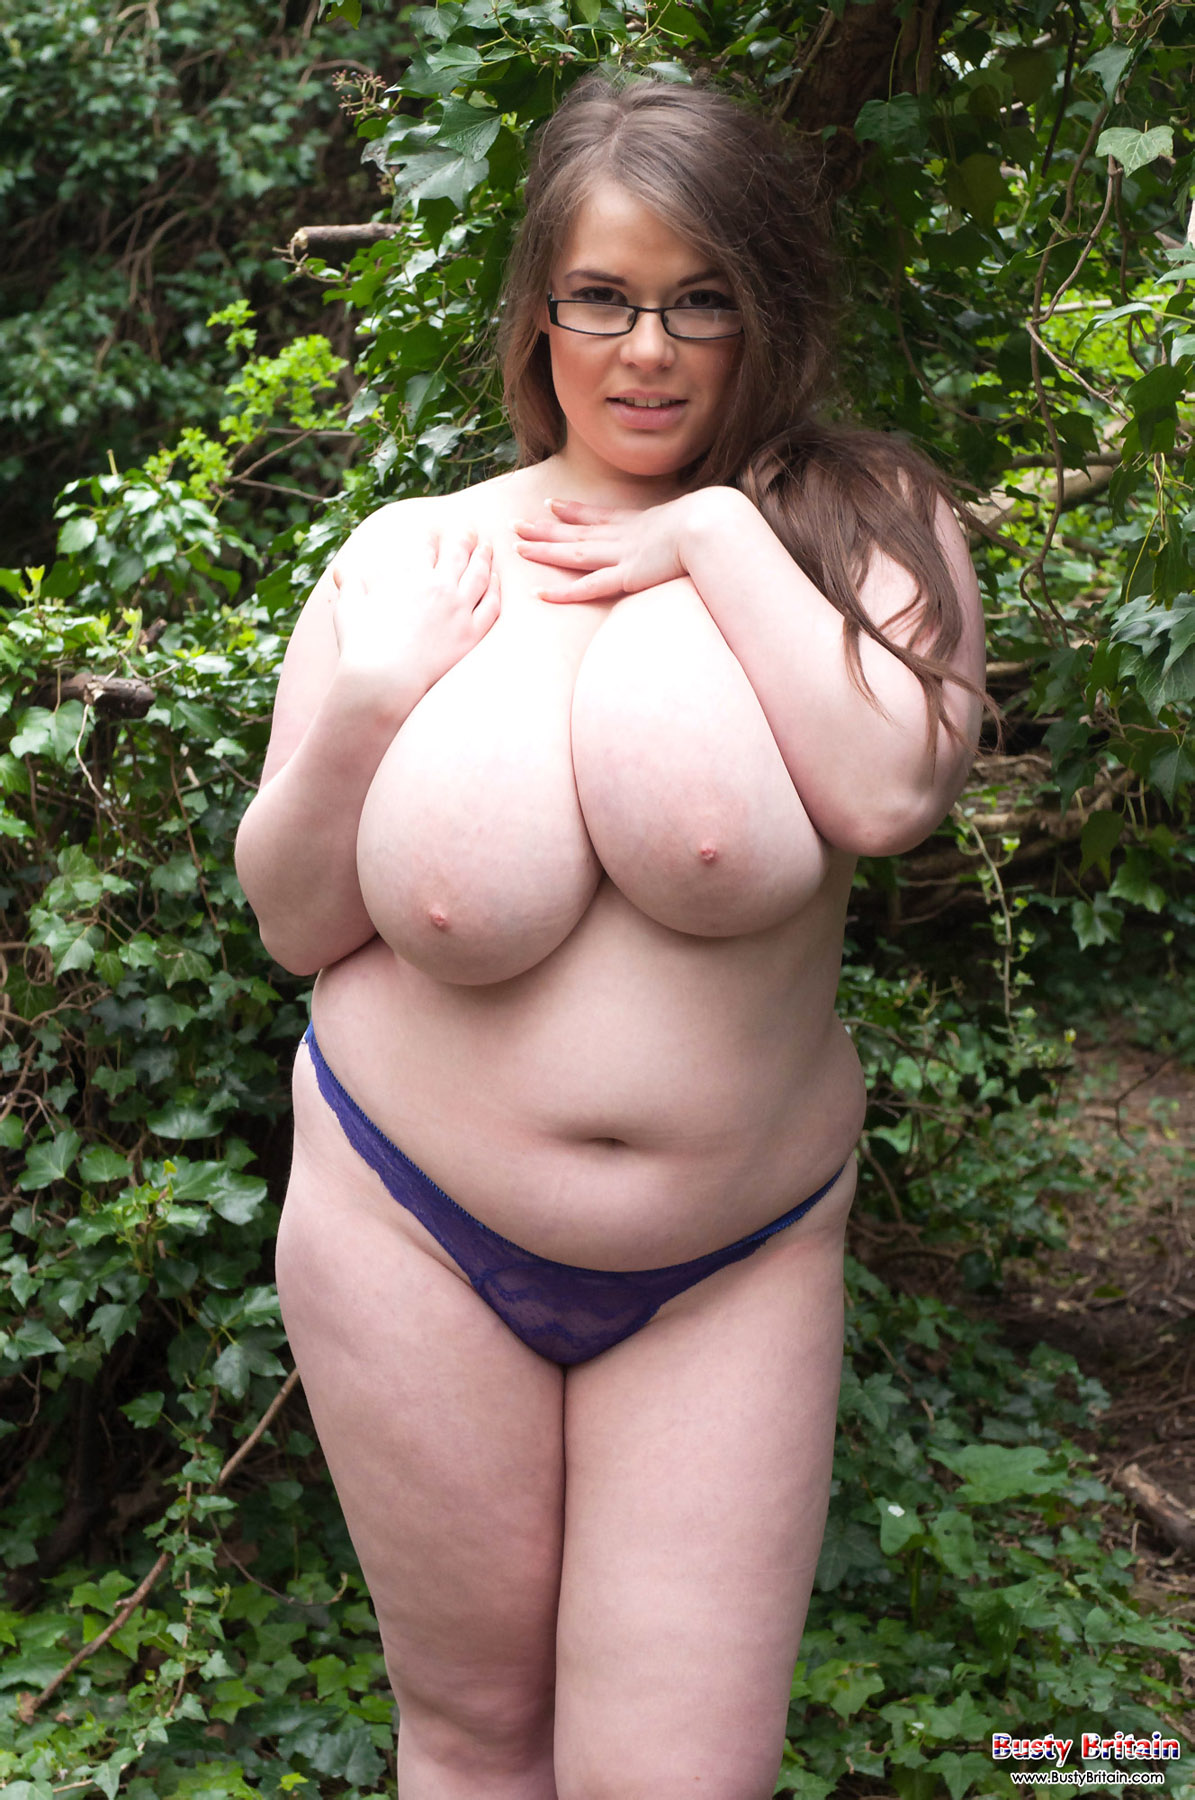 chubby british women amateur pussy images